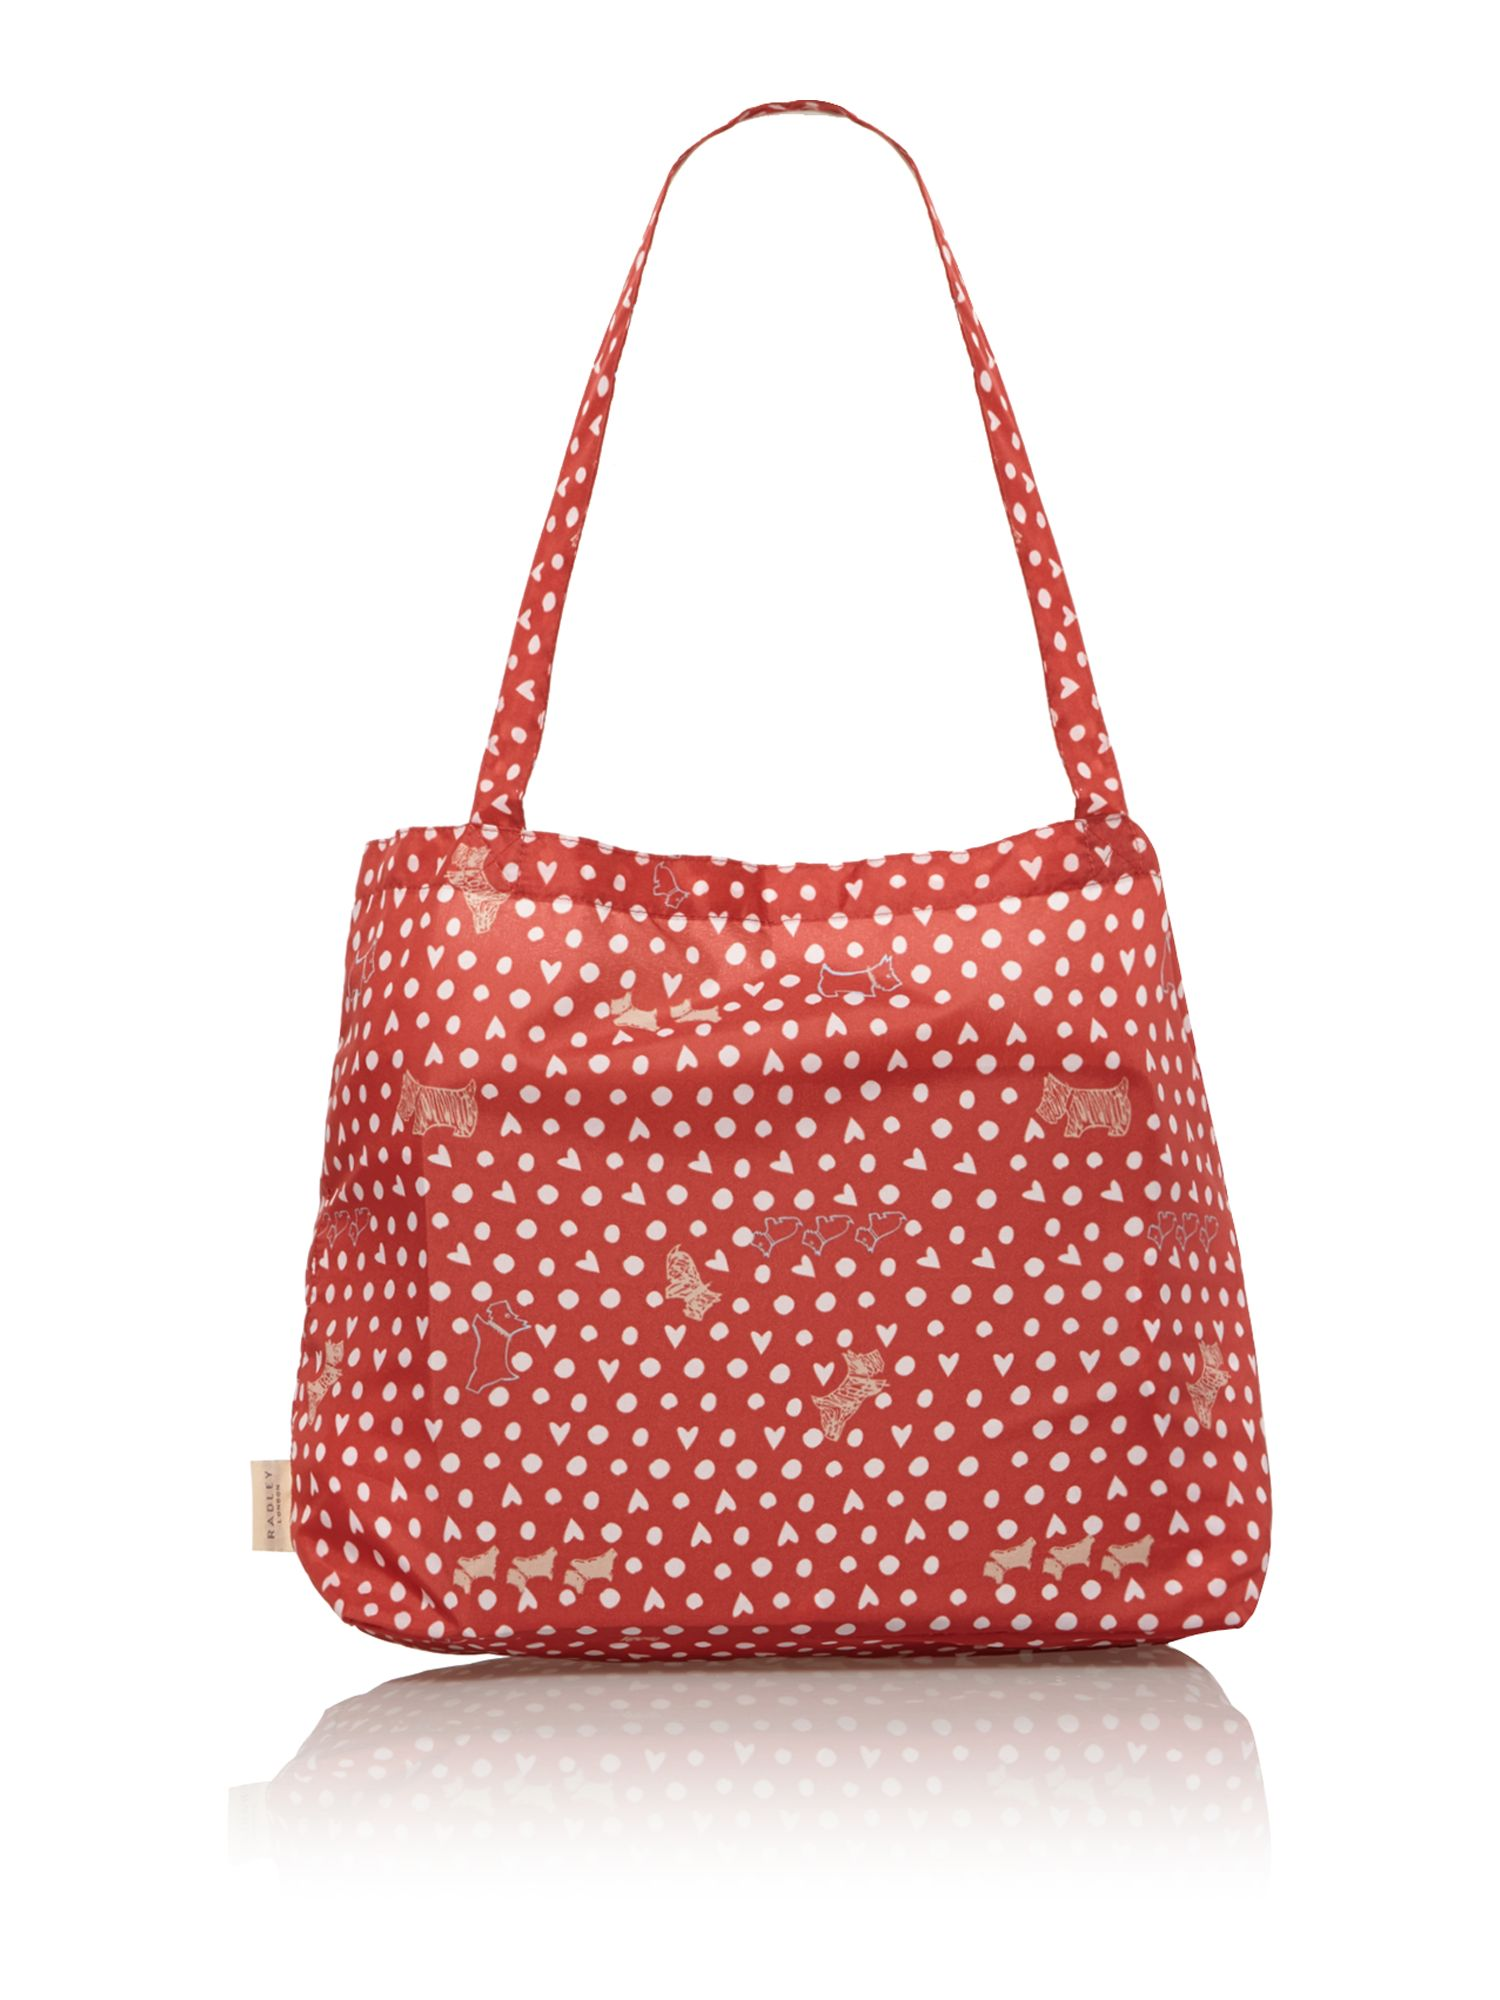 Medium pink foldaway tote bag